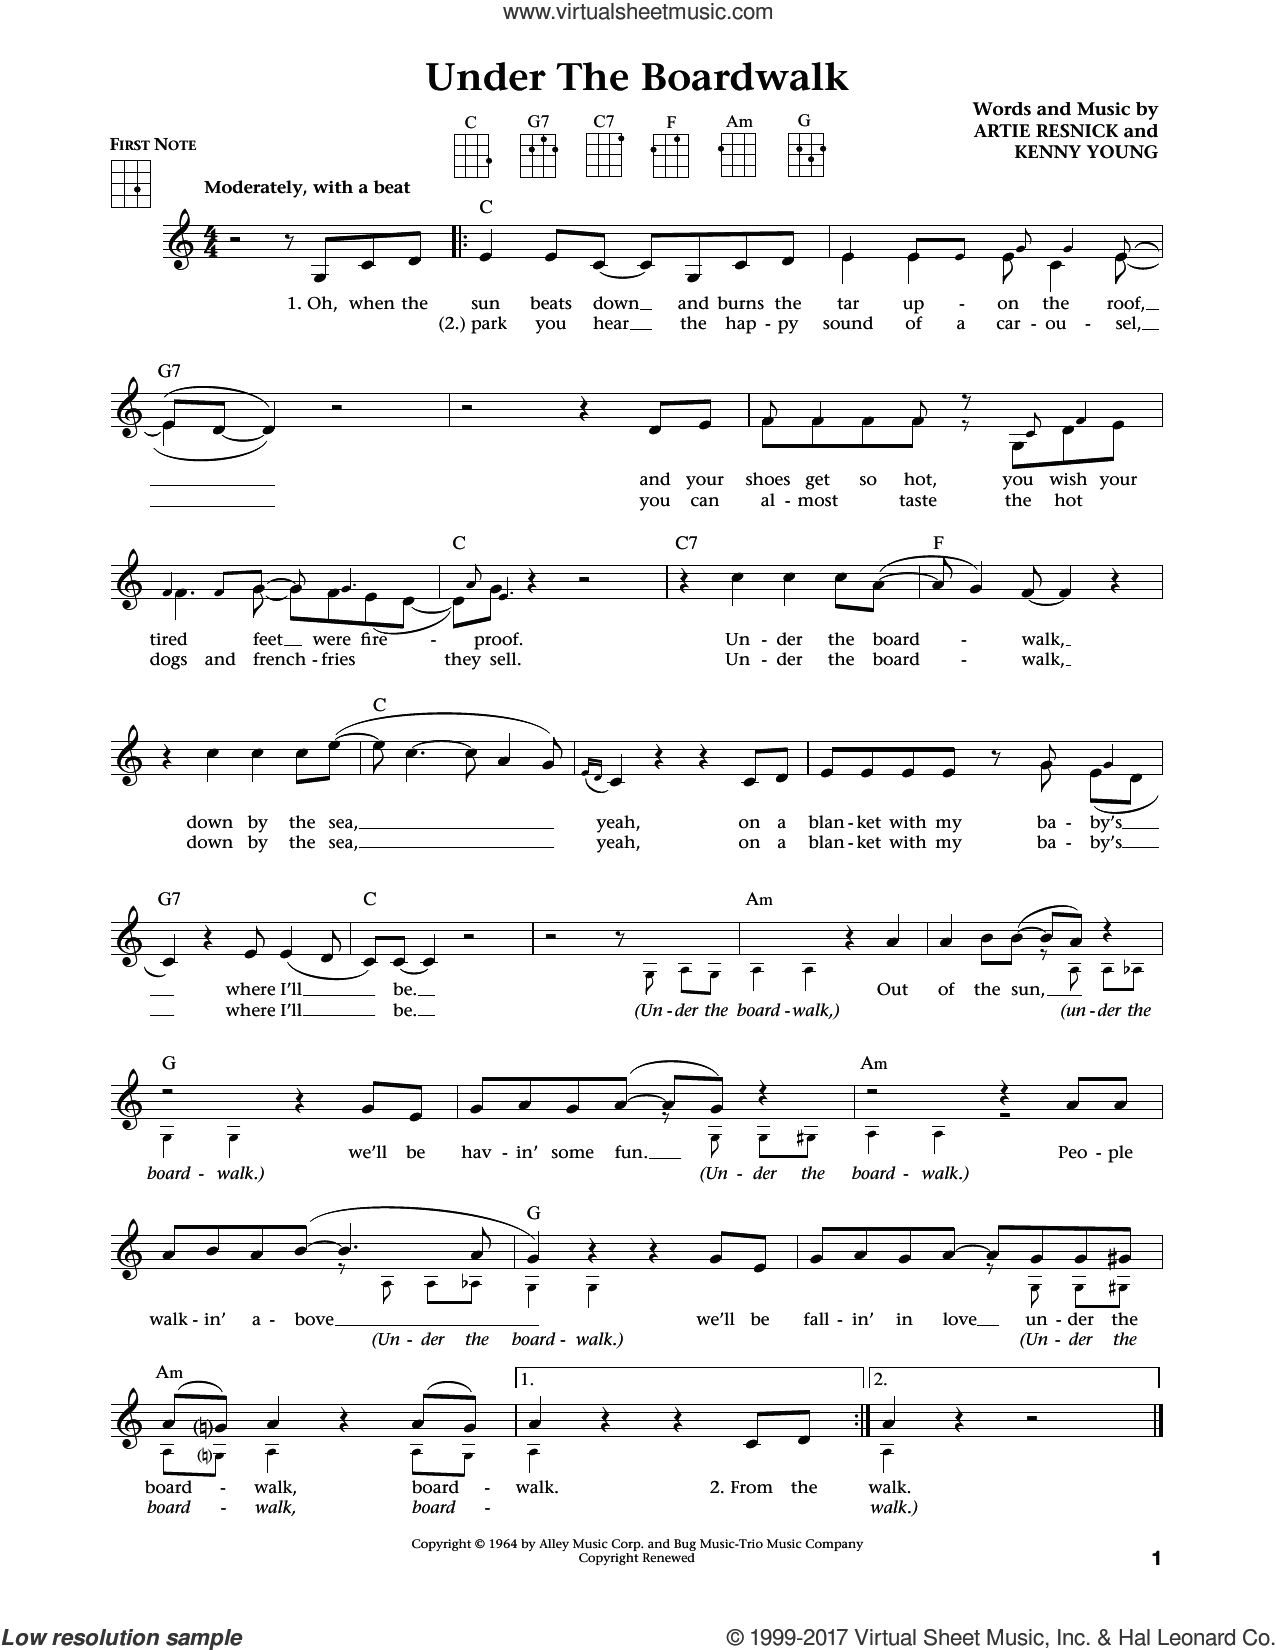 Under The Boardwalk (from The Daily Ukulele) (arr. Liz and Jim Beloff) sheet music for ukulele by The Drifters, Jim Beloff and Liz Beloff, intermediate skill level